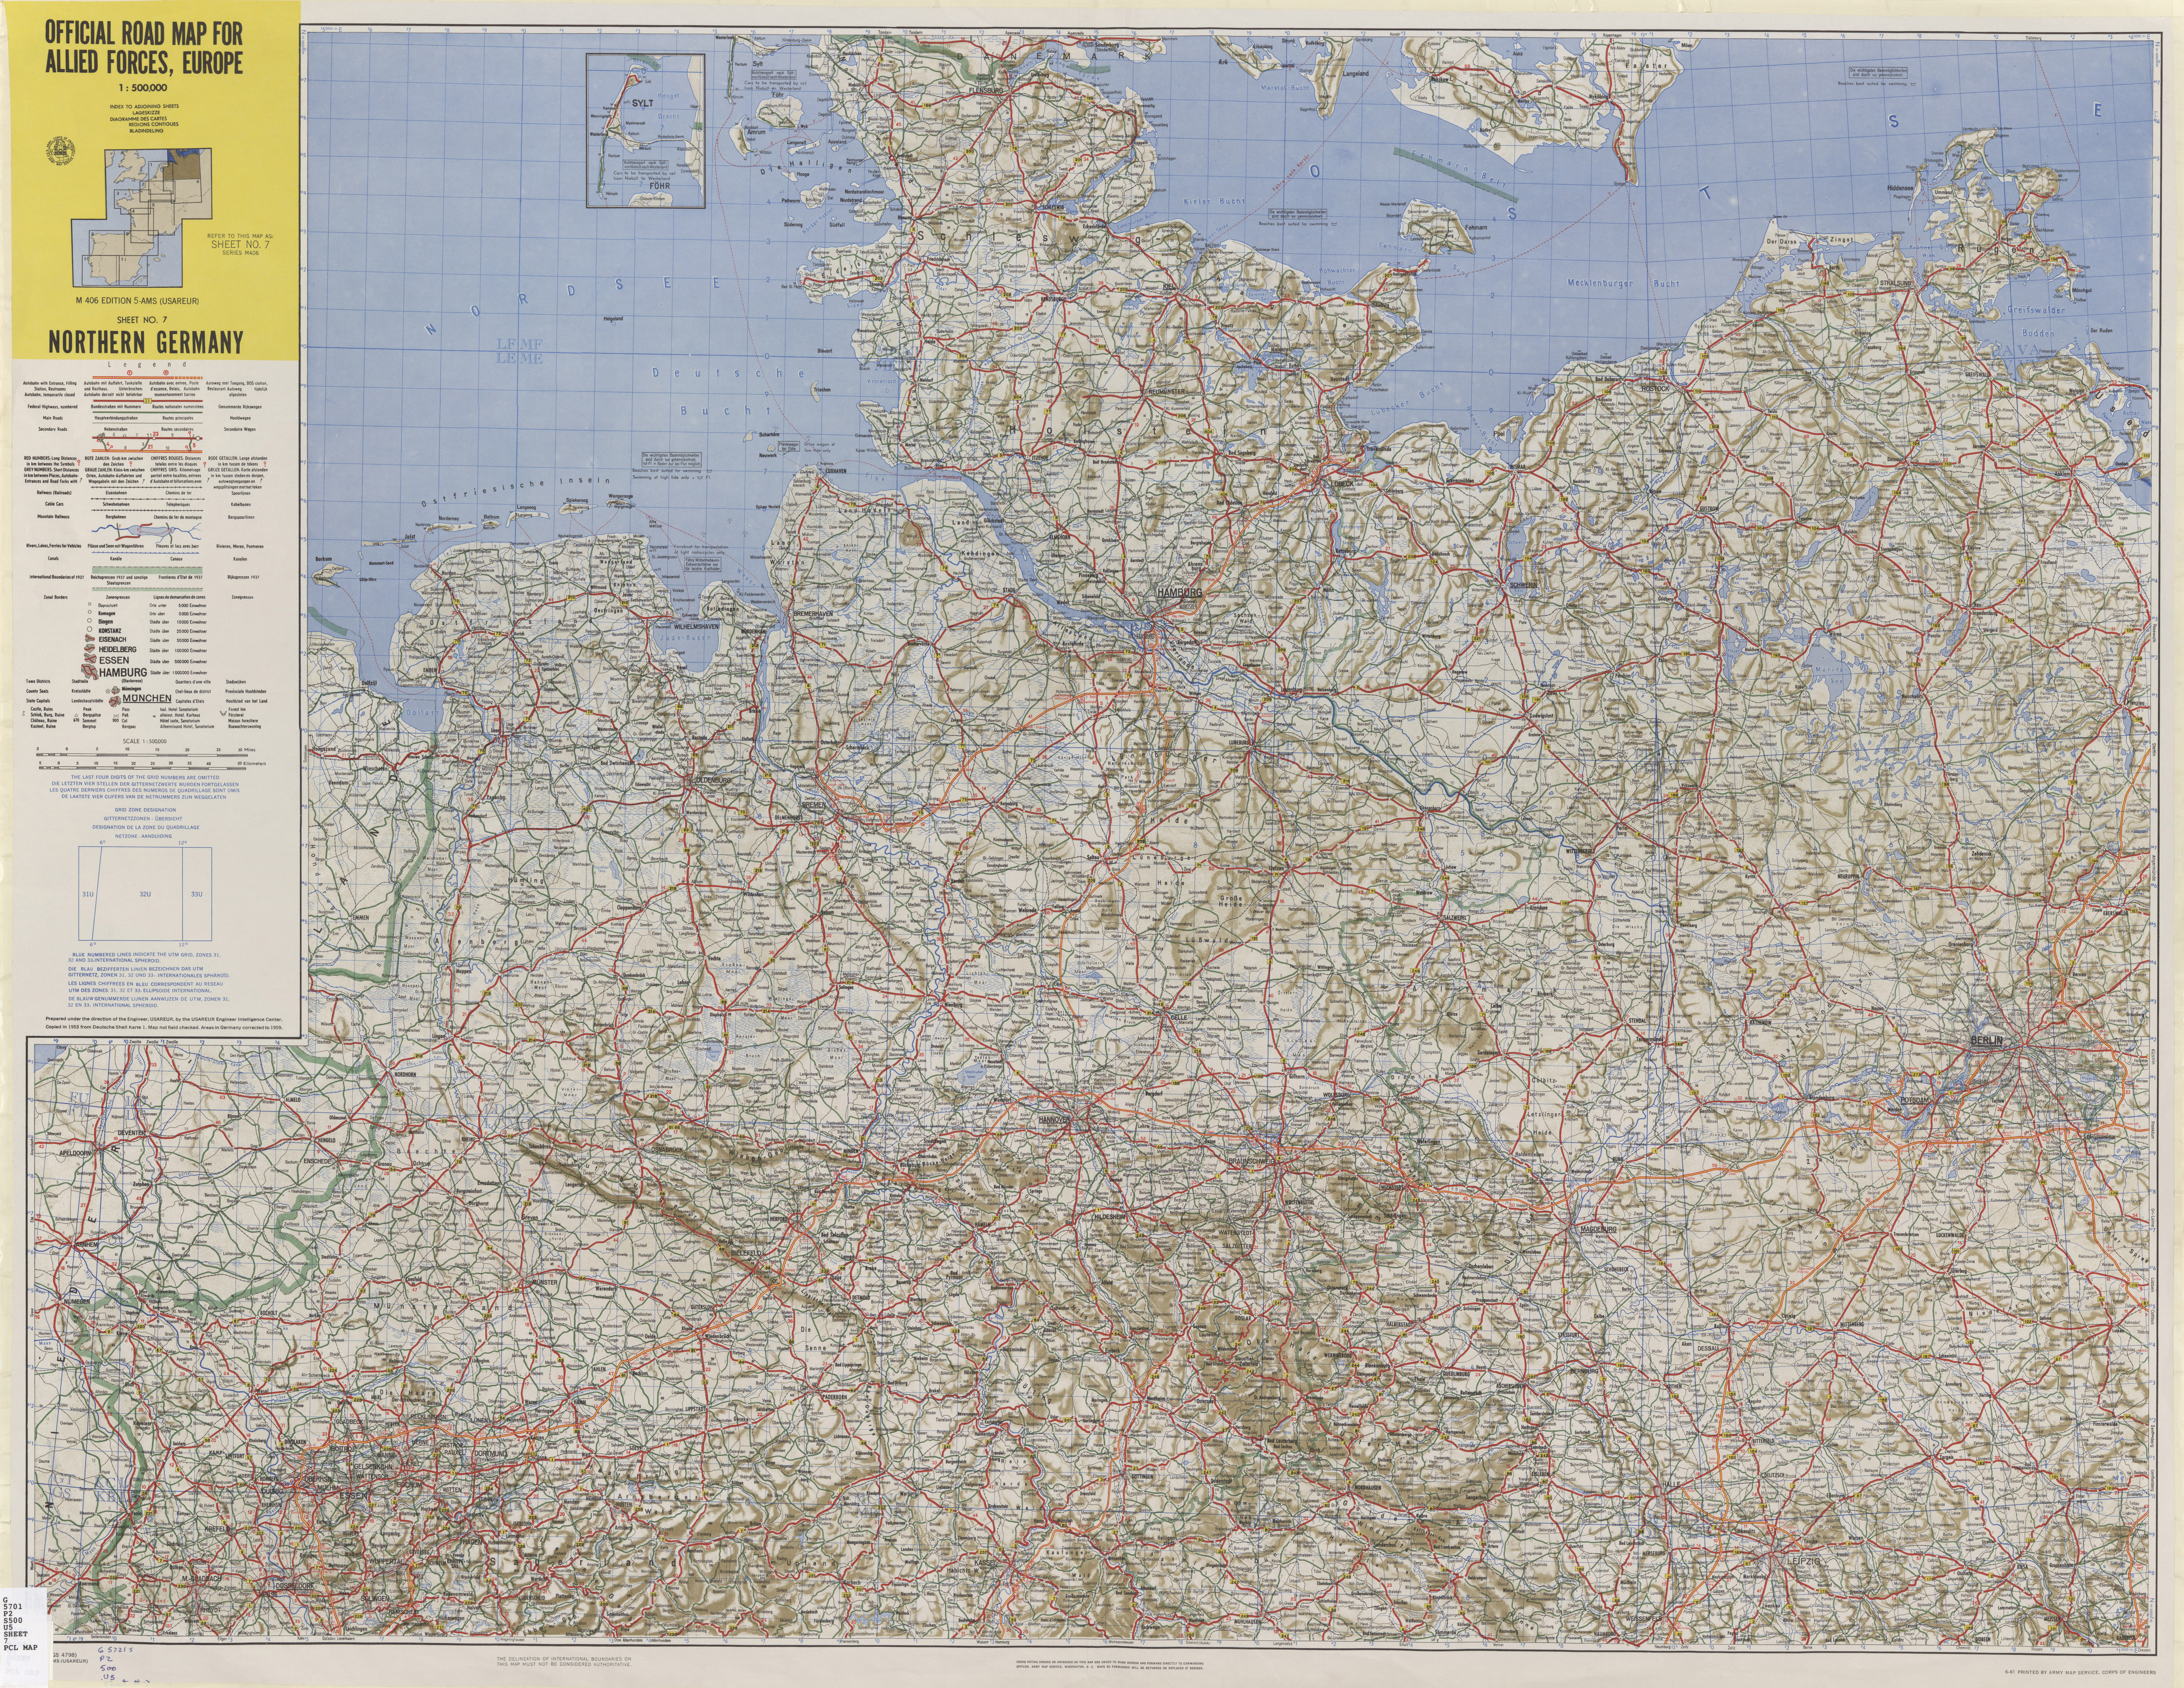 Europe Road Maps Allied Forces Topographic Maps - Perry